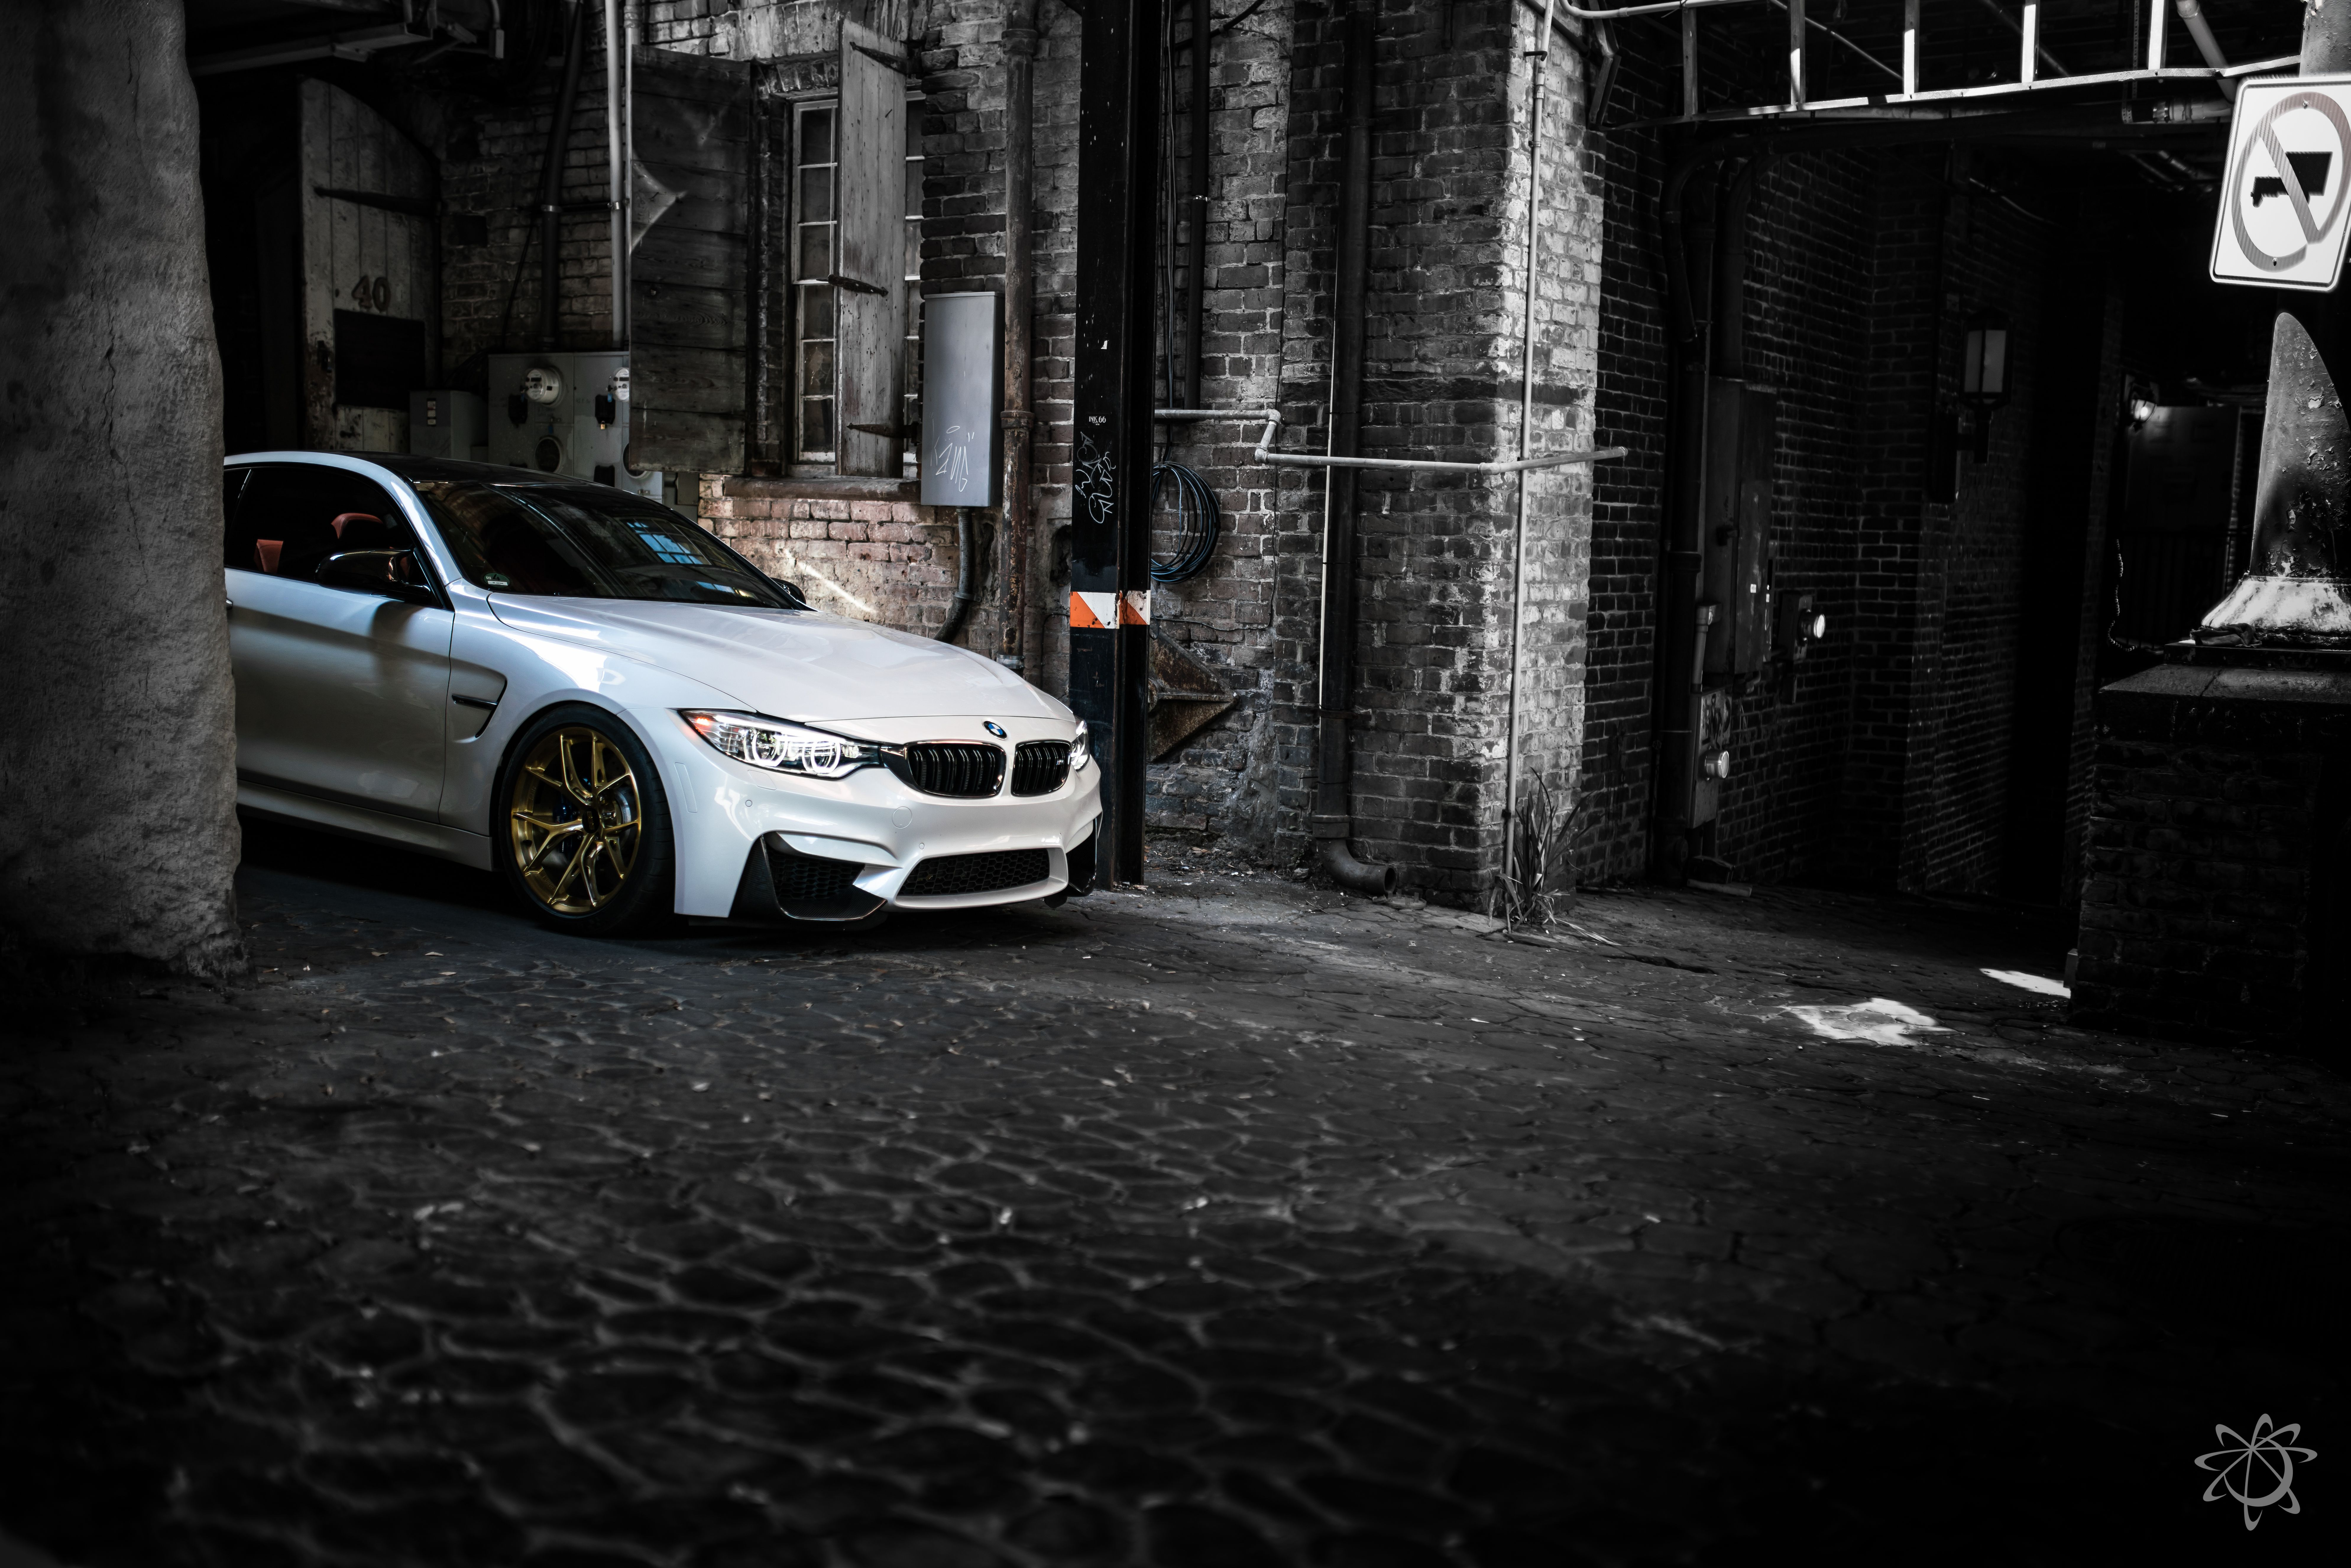 7952x5304 - BMW M4 Wallpapers 24